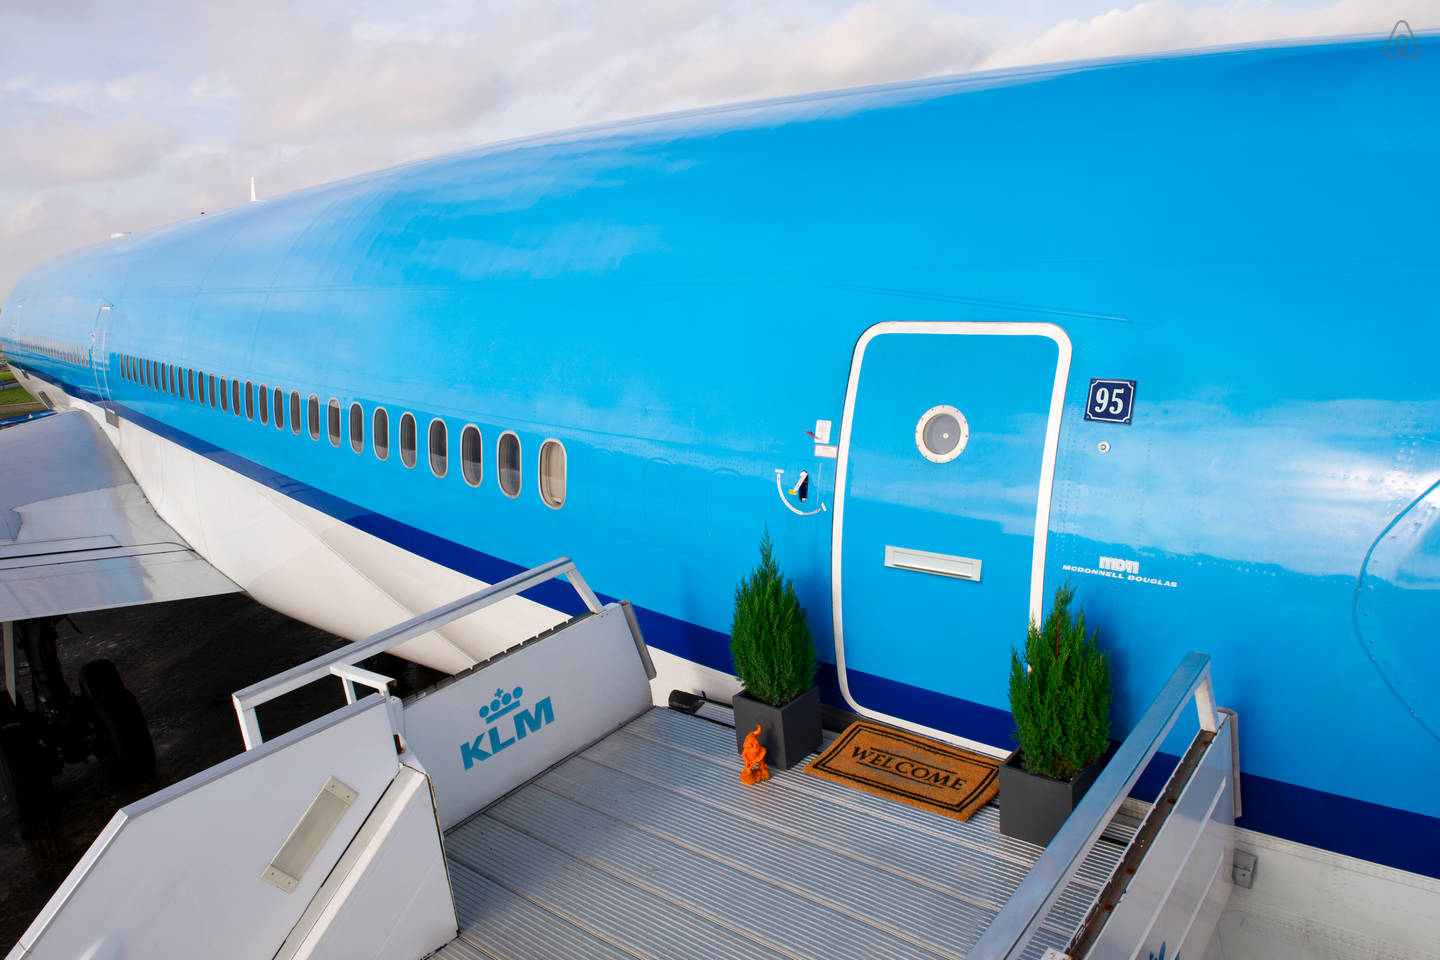 KLM Airplane Apartment on Airbnb